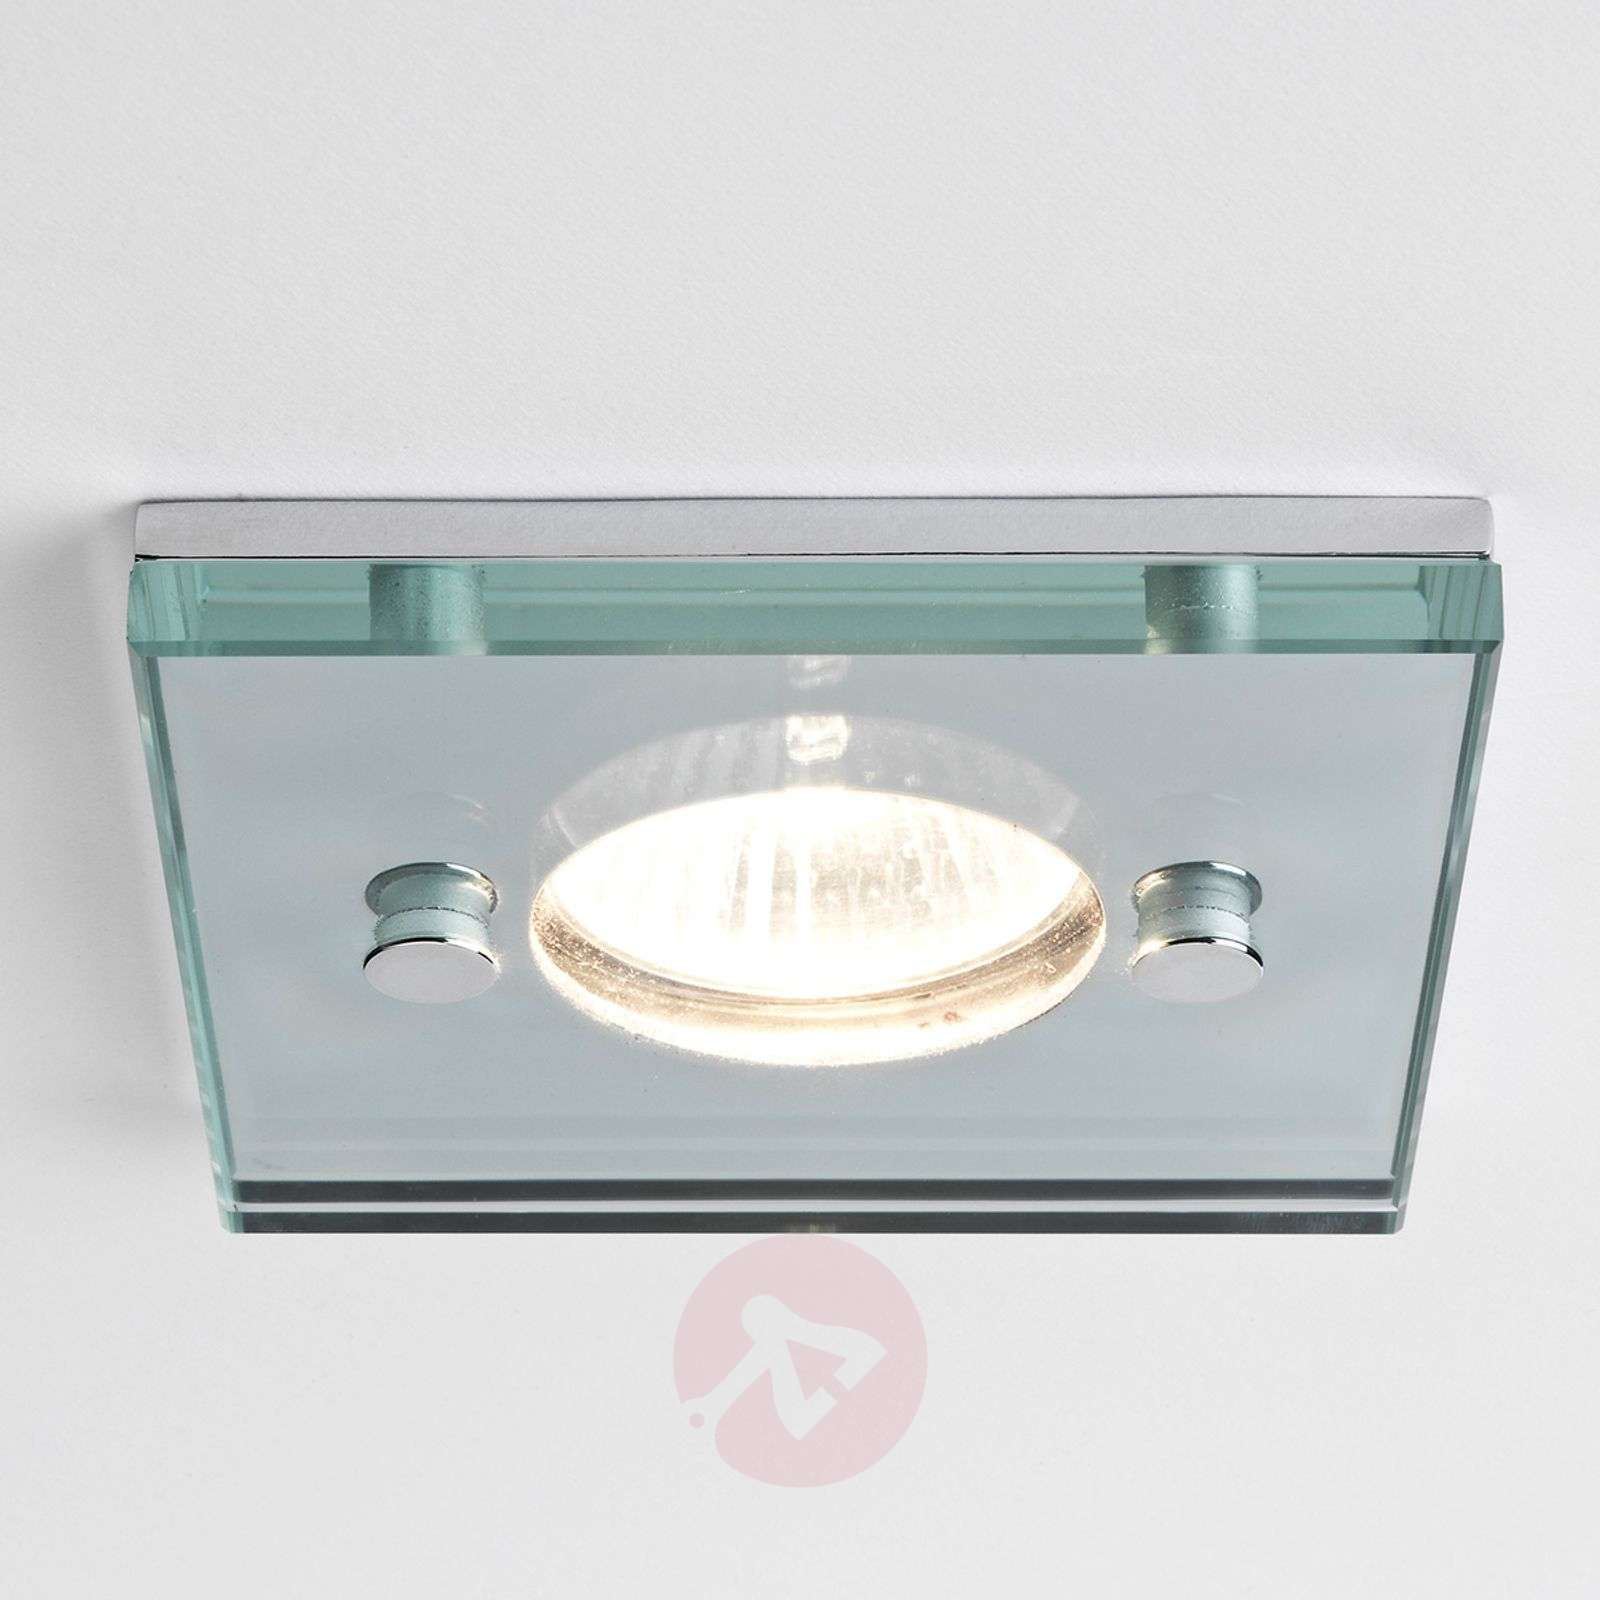 Ice Square HV Built-In Ceiling Light Attractive-1020111-02